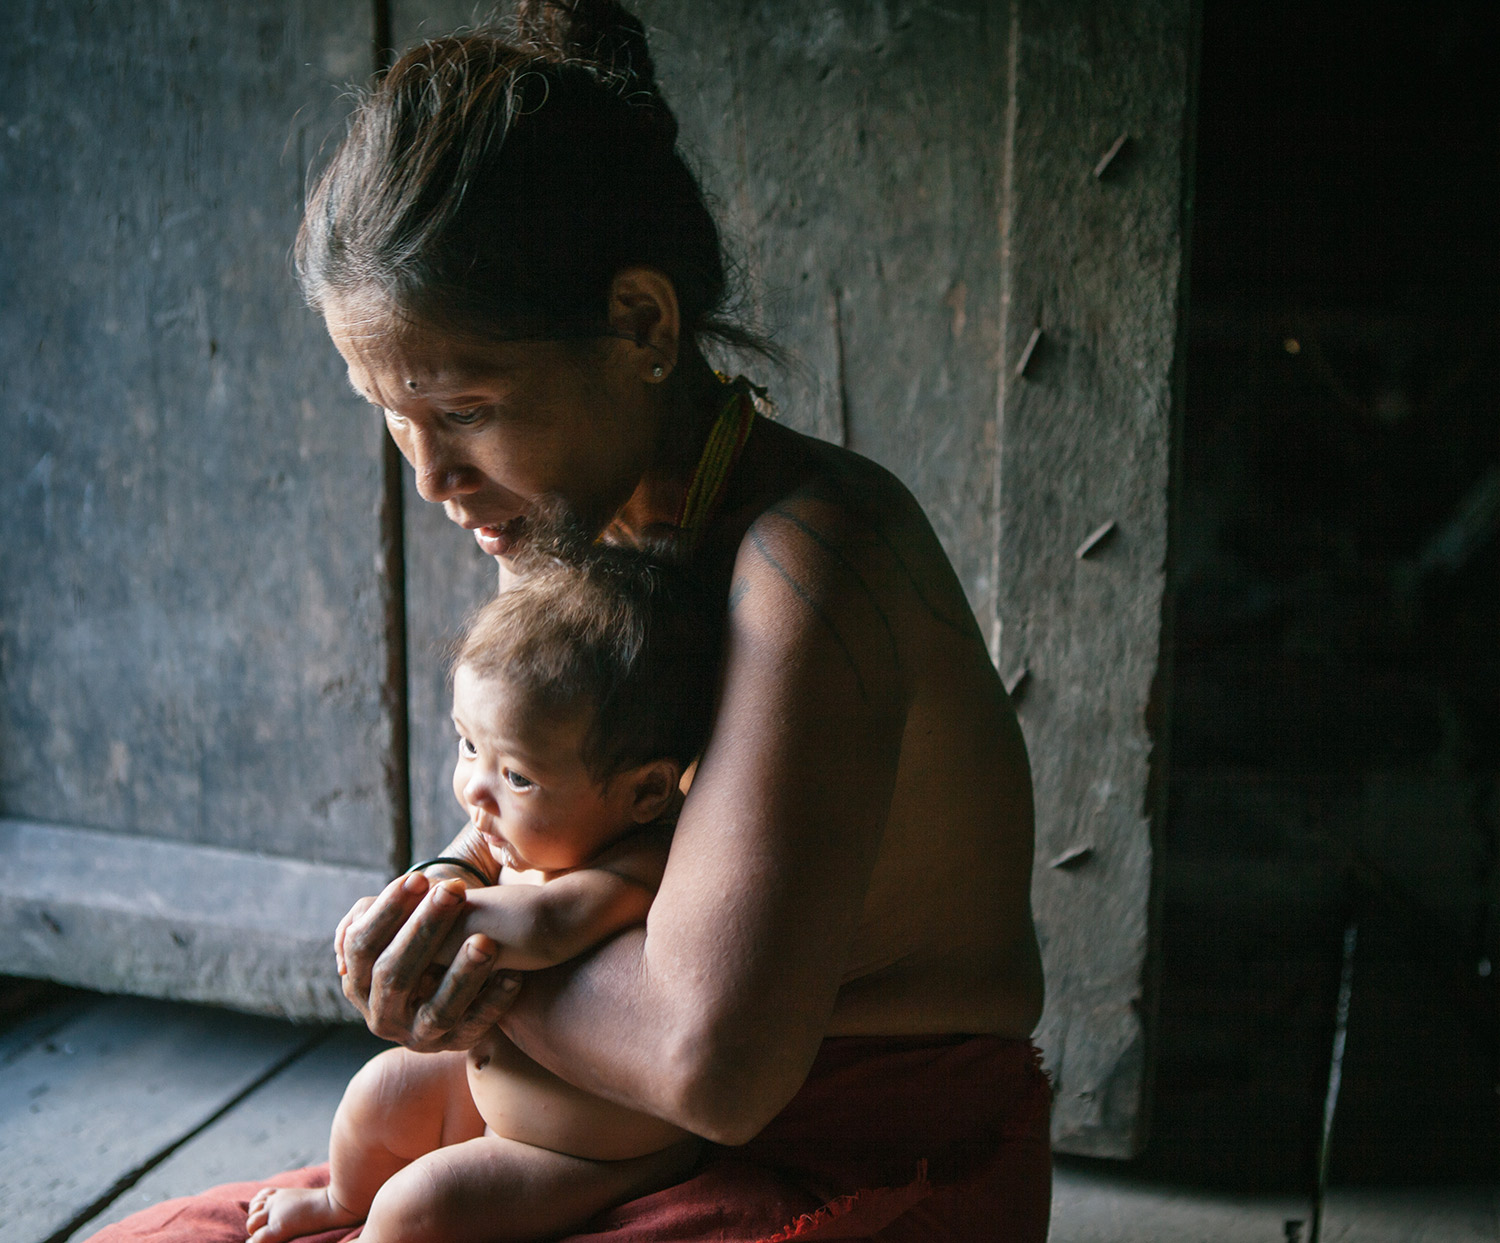 A Mentawai mother with her baby.